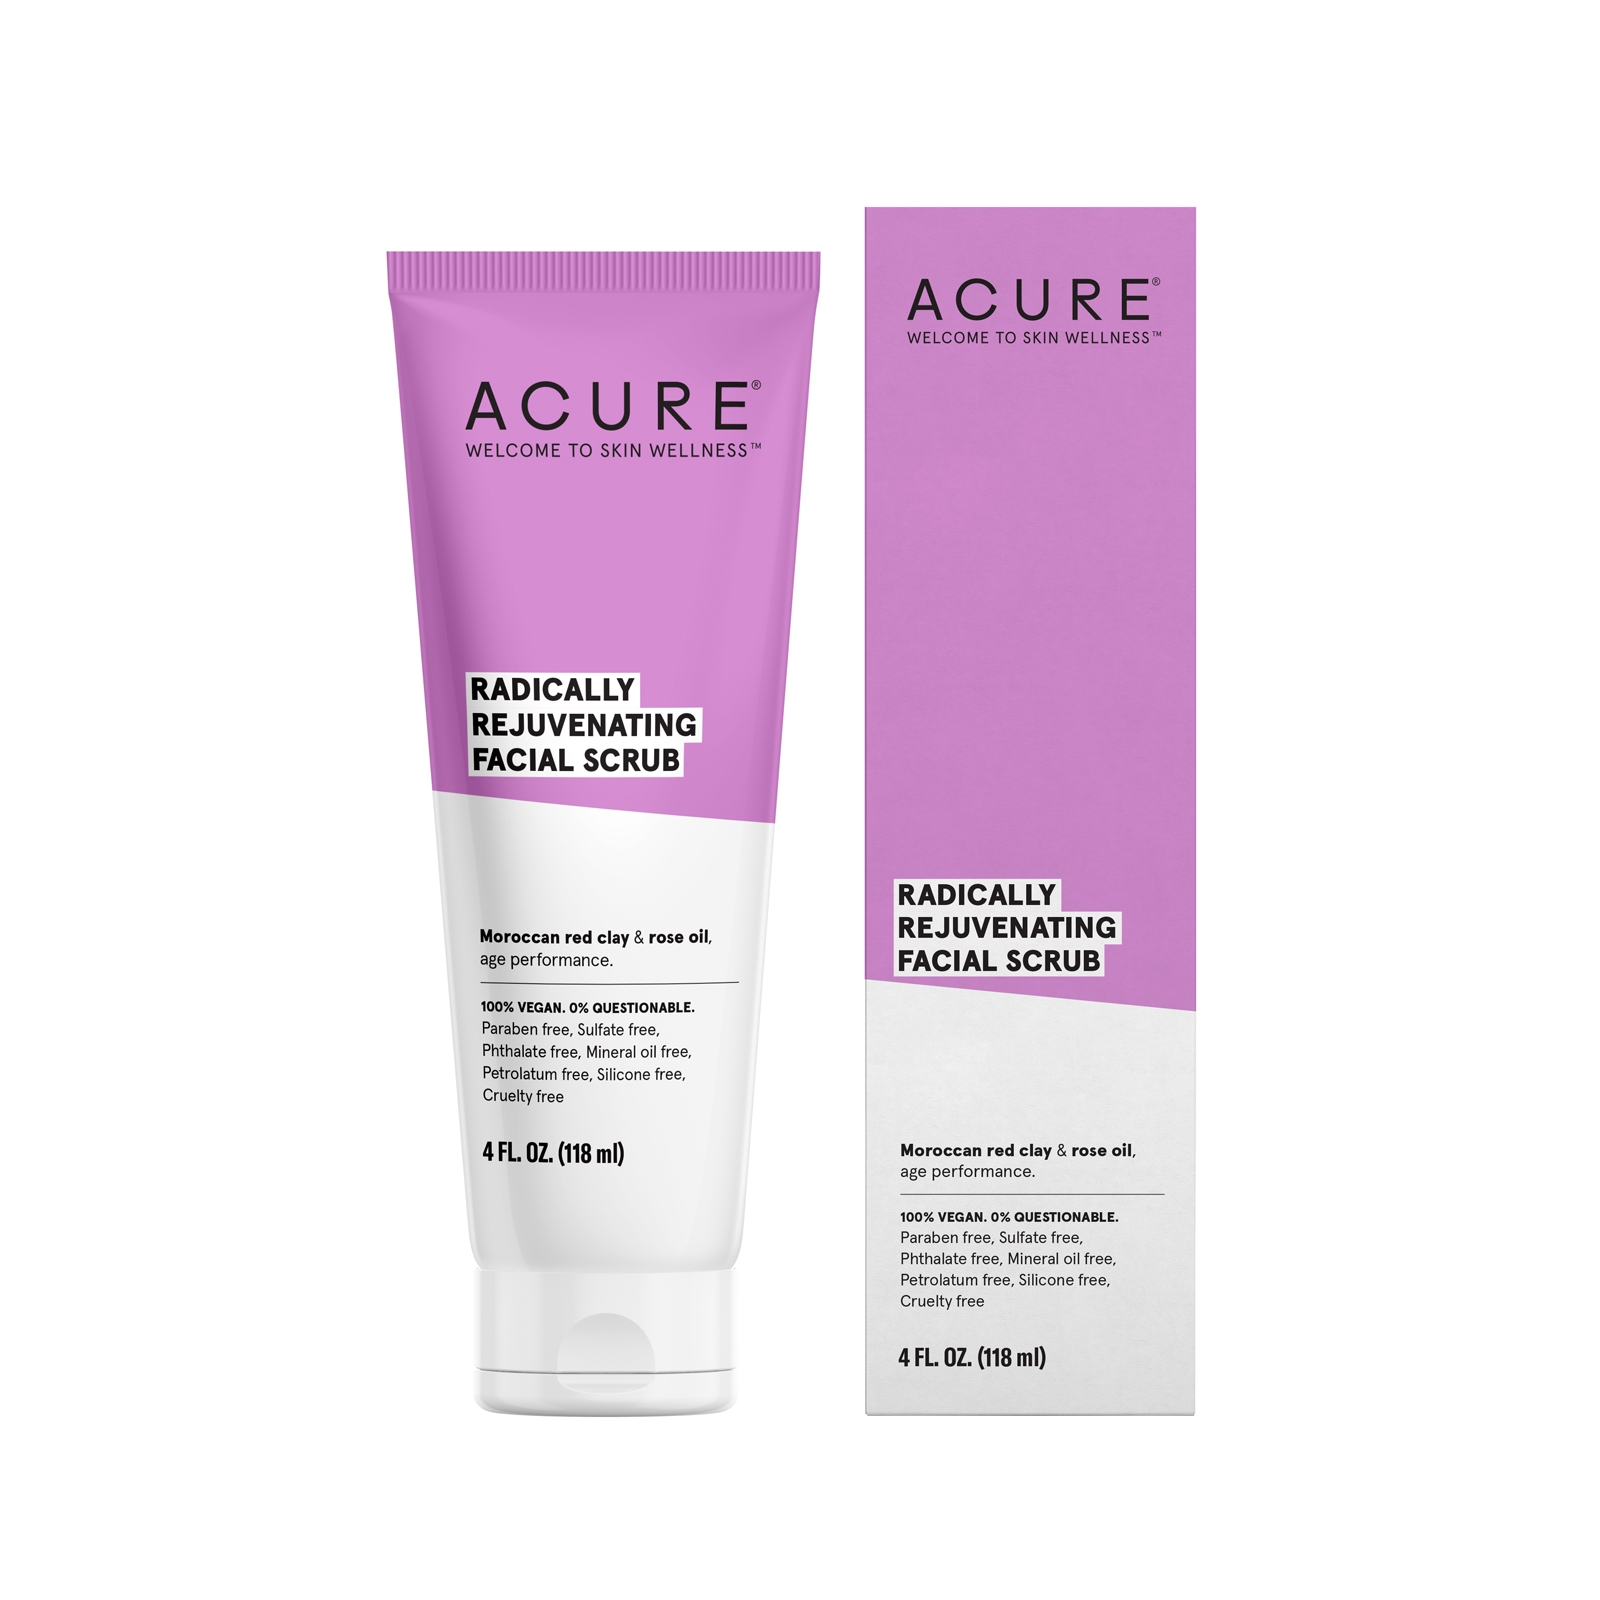 Acure Radically Rejuvenating Facial Scrub, 118ml